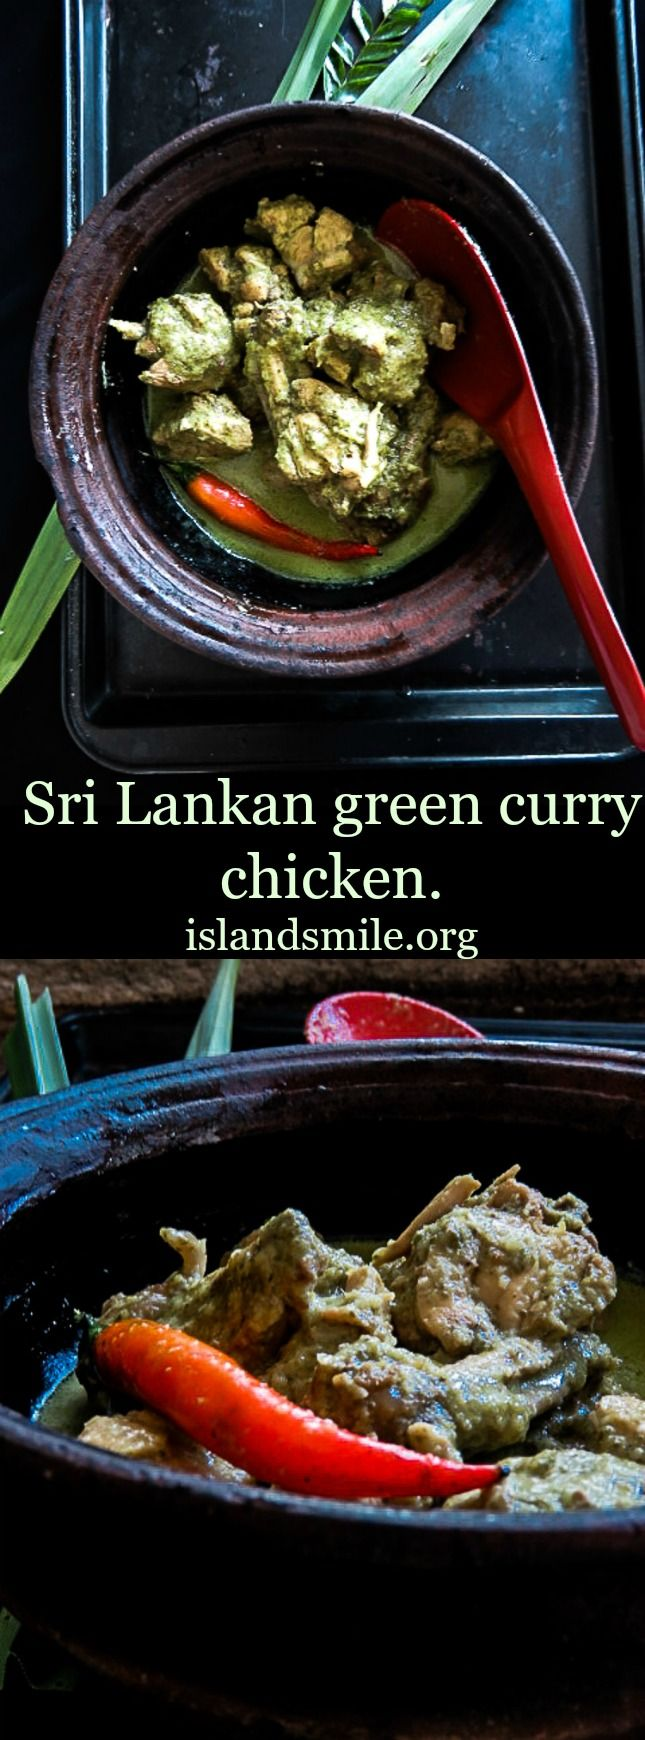 Sri lankan I chicken I curry I lunch I gluten-free I recipe I easy I meals I healthy I coconut milk I dinner.  Green curry chicken(Sri Lankan)with freshly grated Coconut, is inspired by the ever popular Thai green curry. use your basic curry ingredients to make a simpler green curry dish.